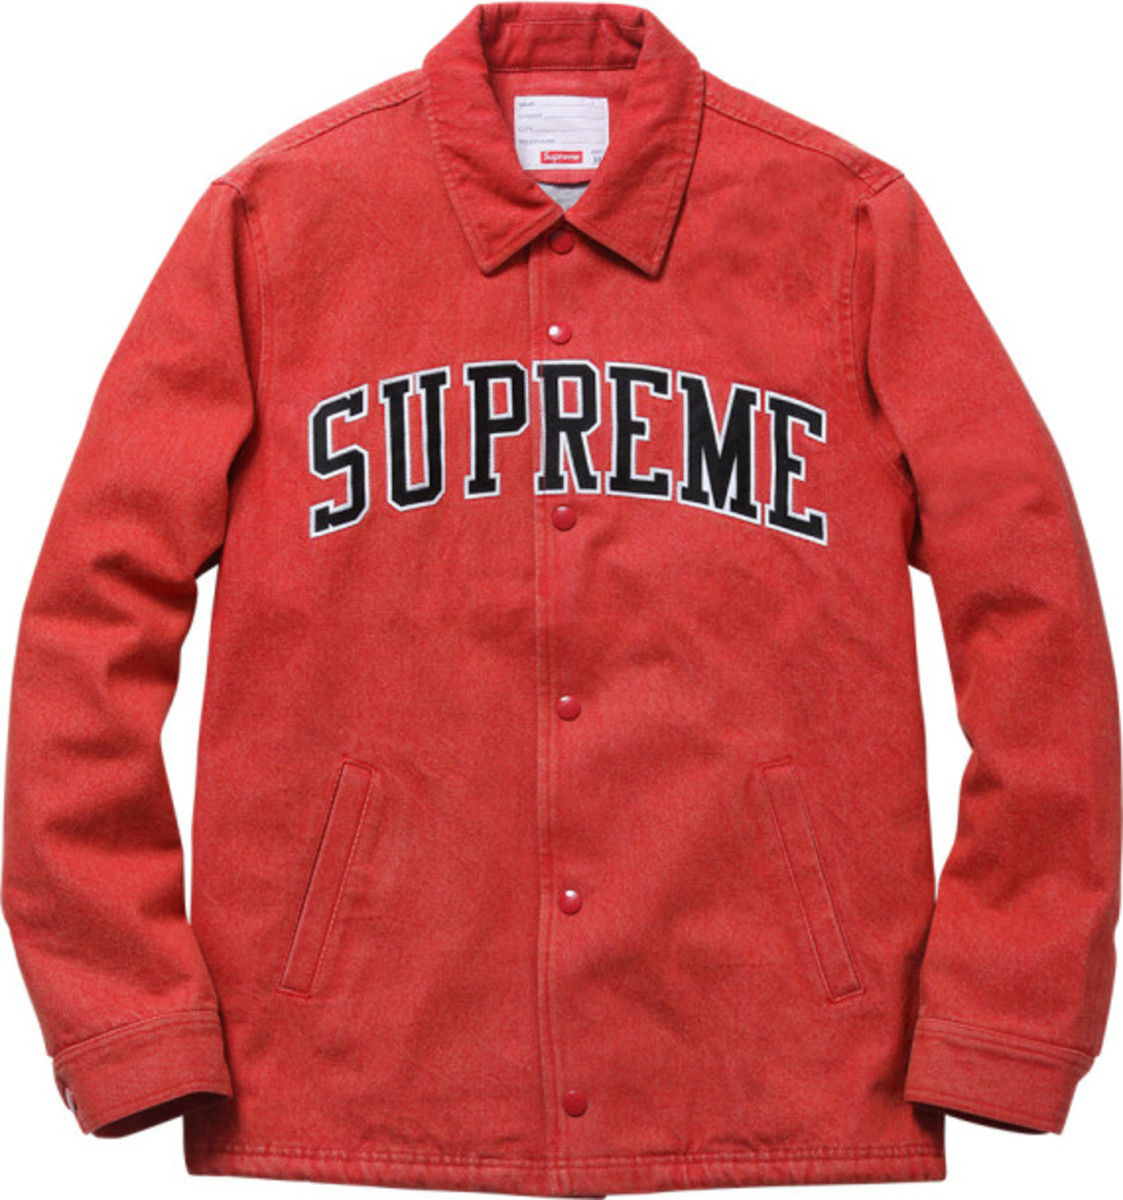 supreme-fall-winter-2013-outerwear-collection-52